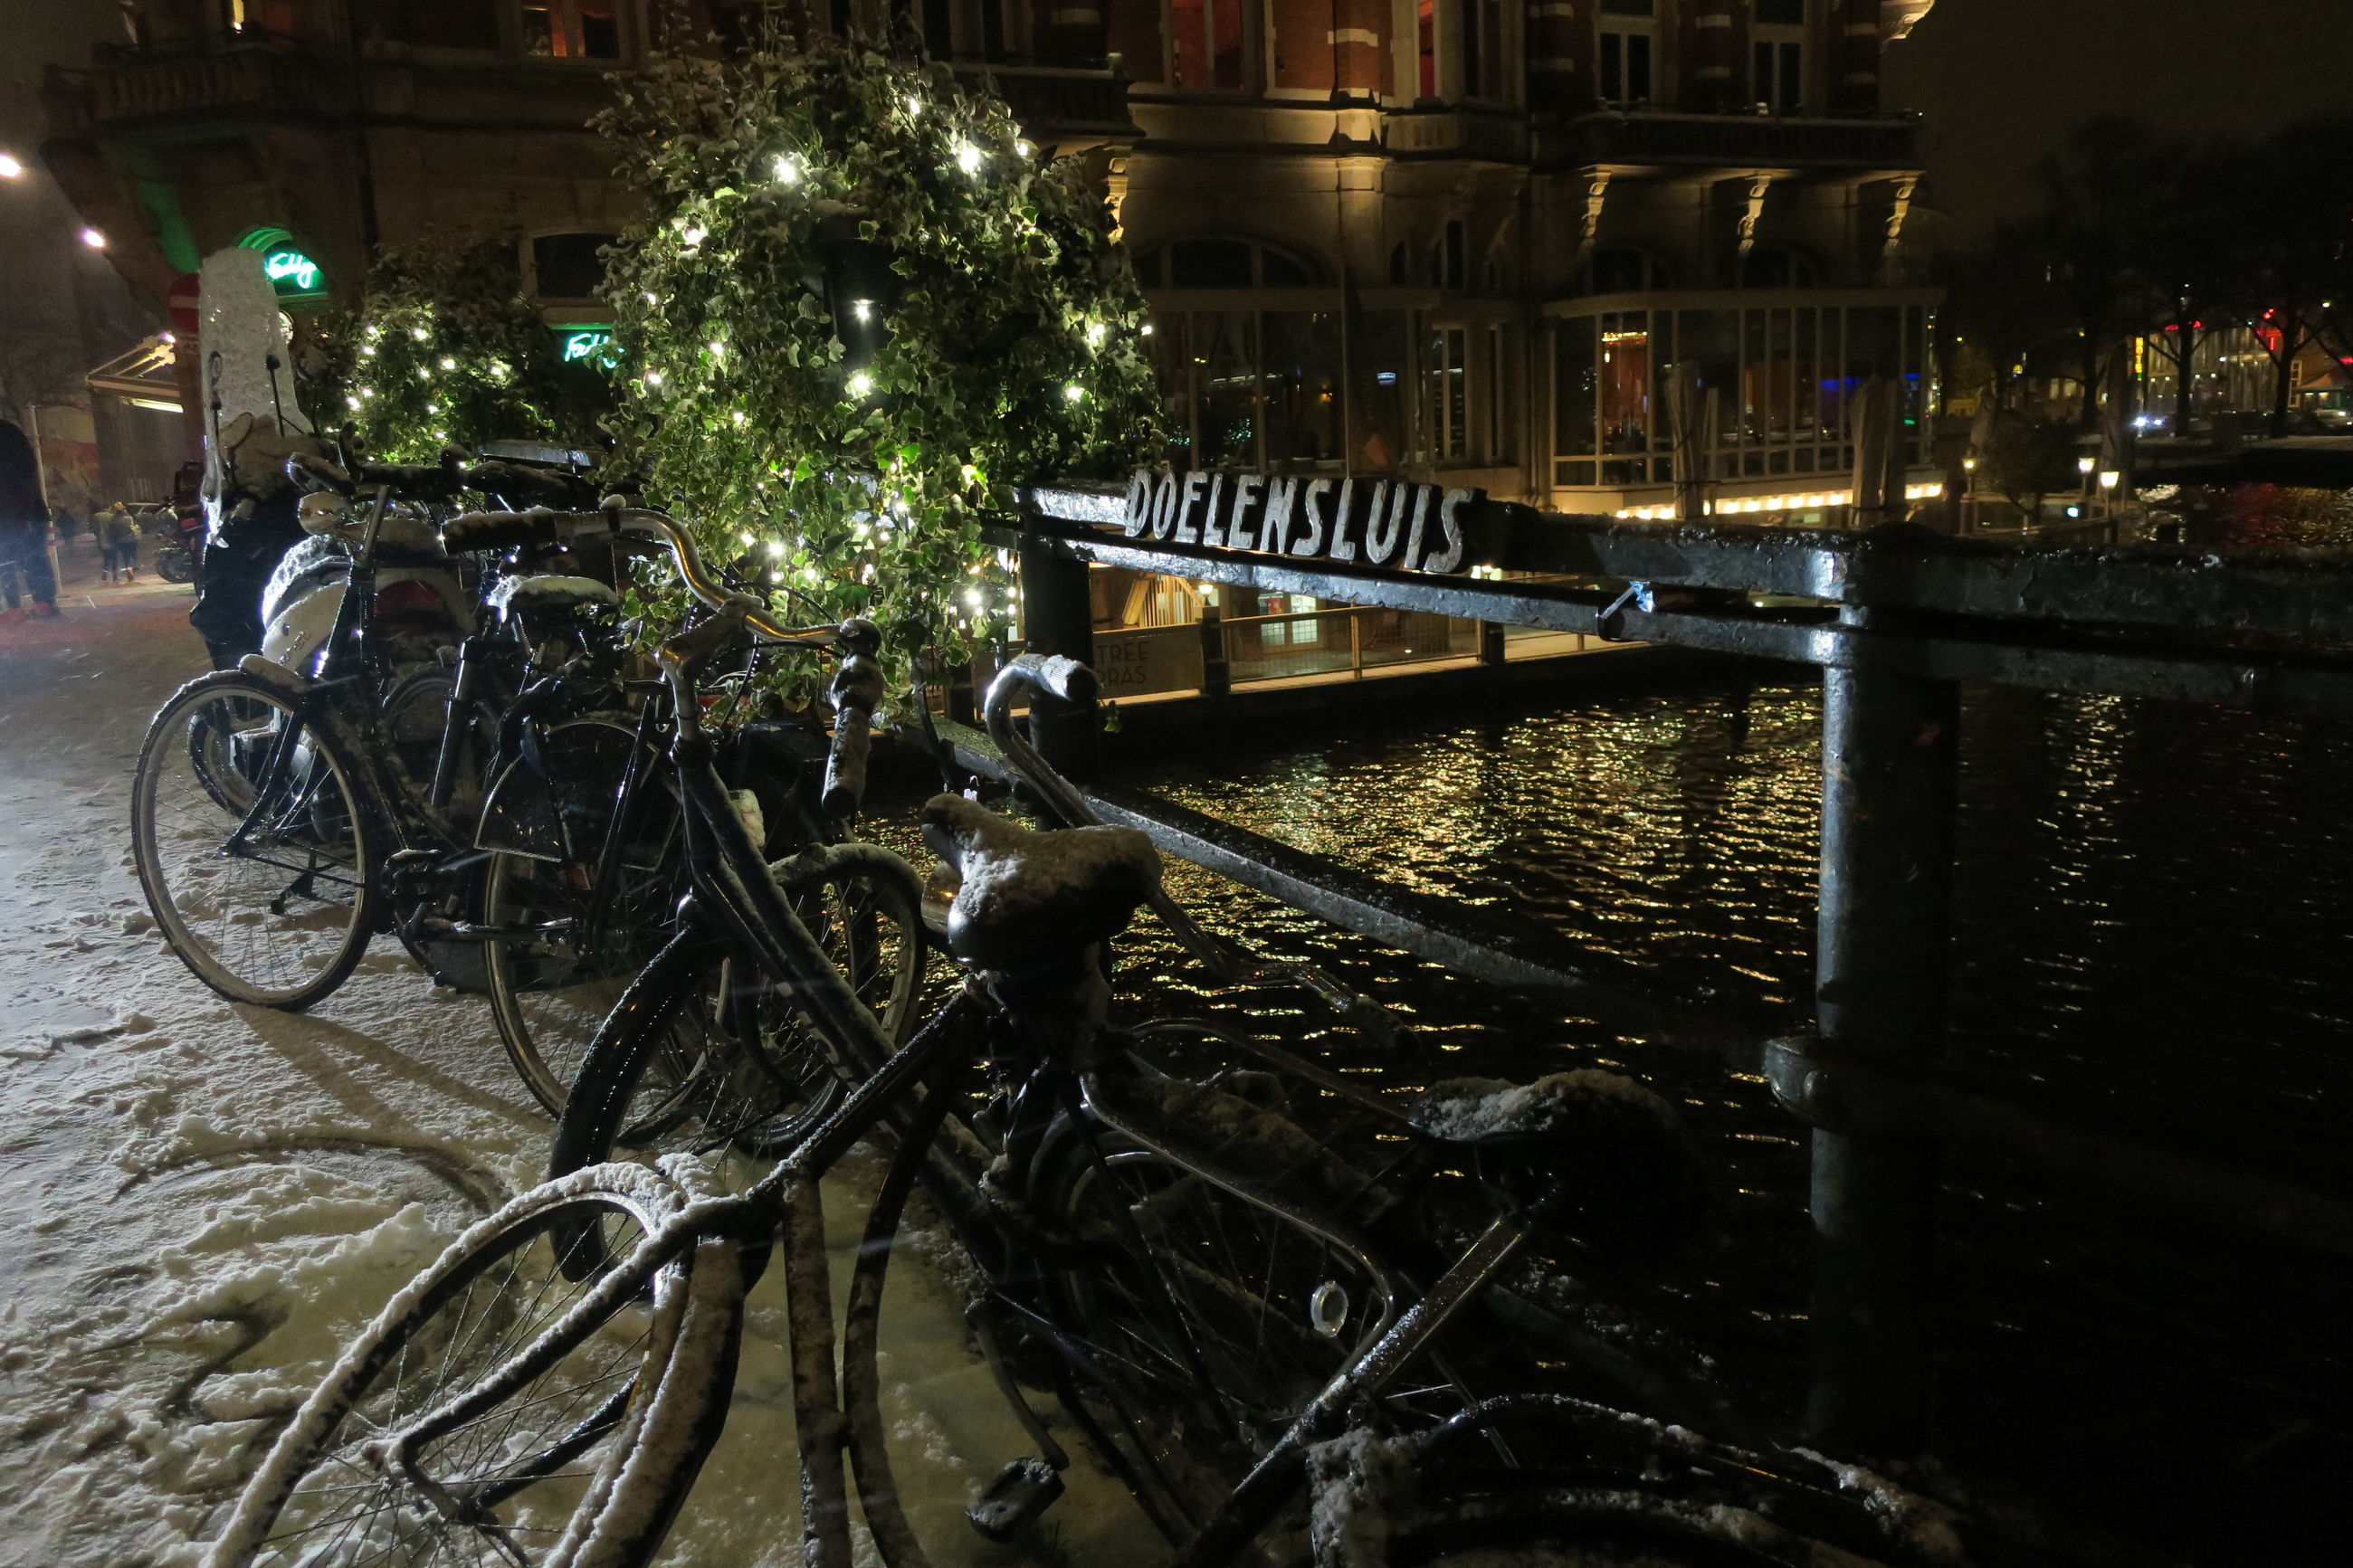 water, bicycle, mode of transport, transportation, illuminated, tree, outdoors, no people, night, christmas tree, nature